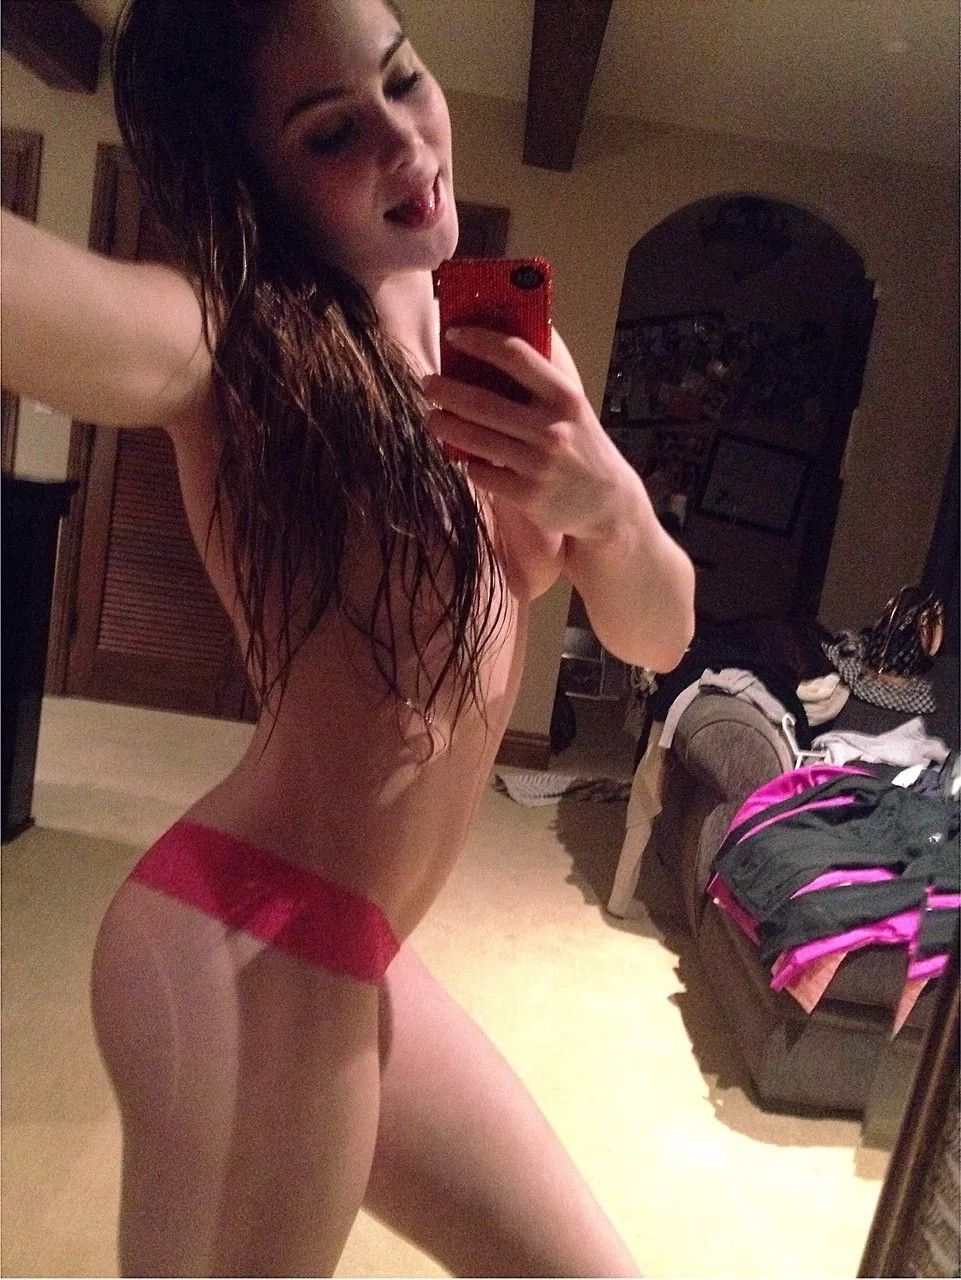 McKayla Maroney Nude Cell Phone Pics Leaked - 2019 year